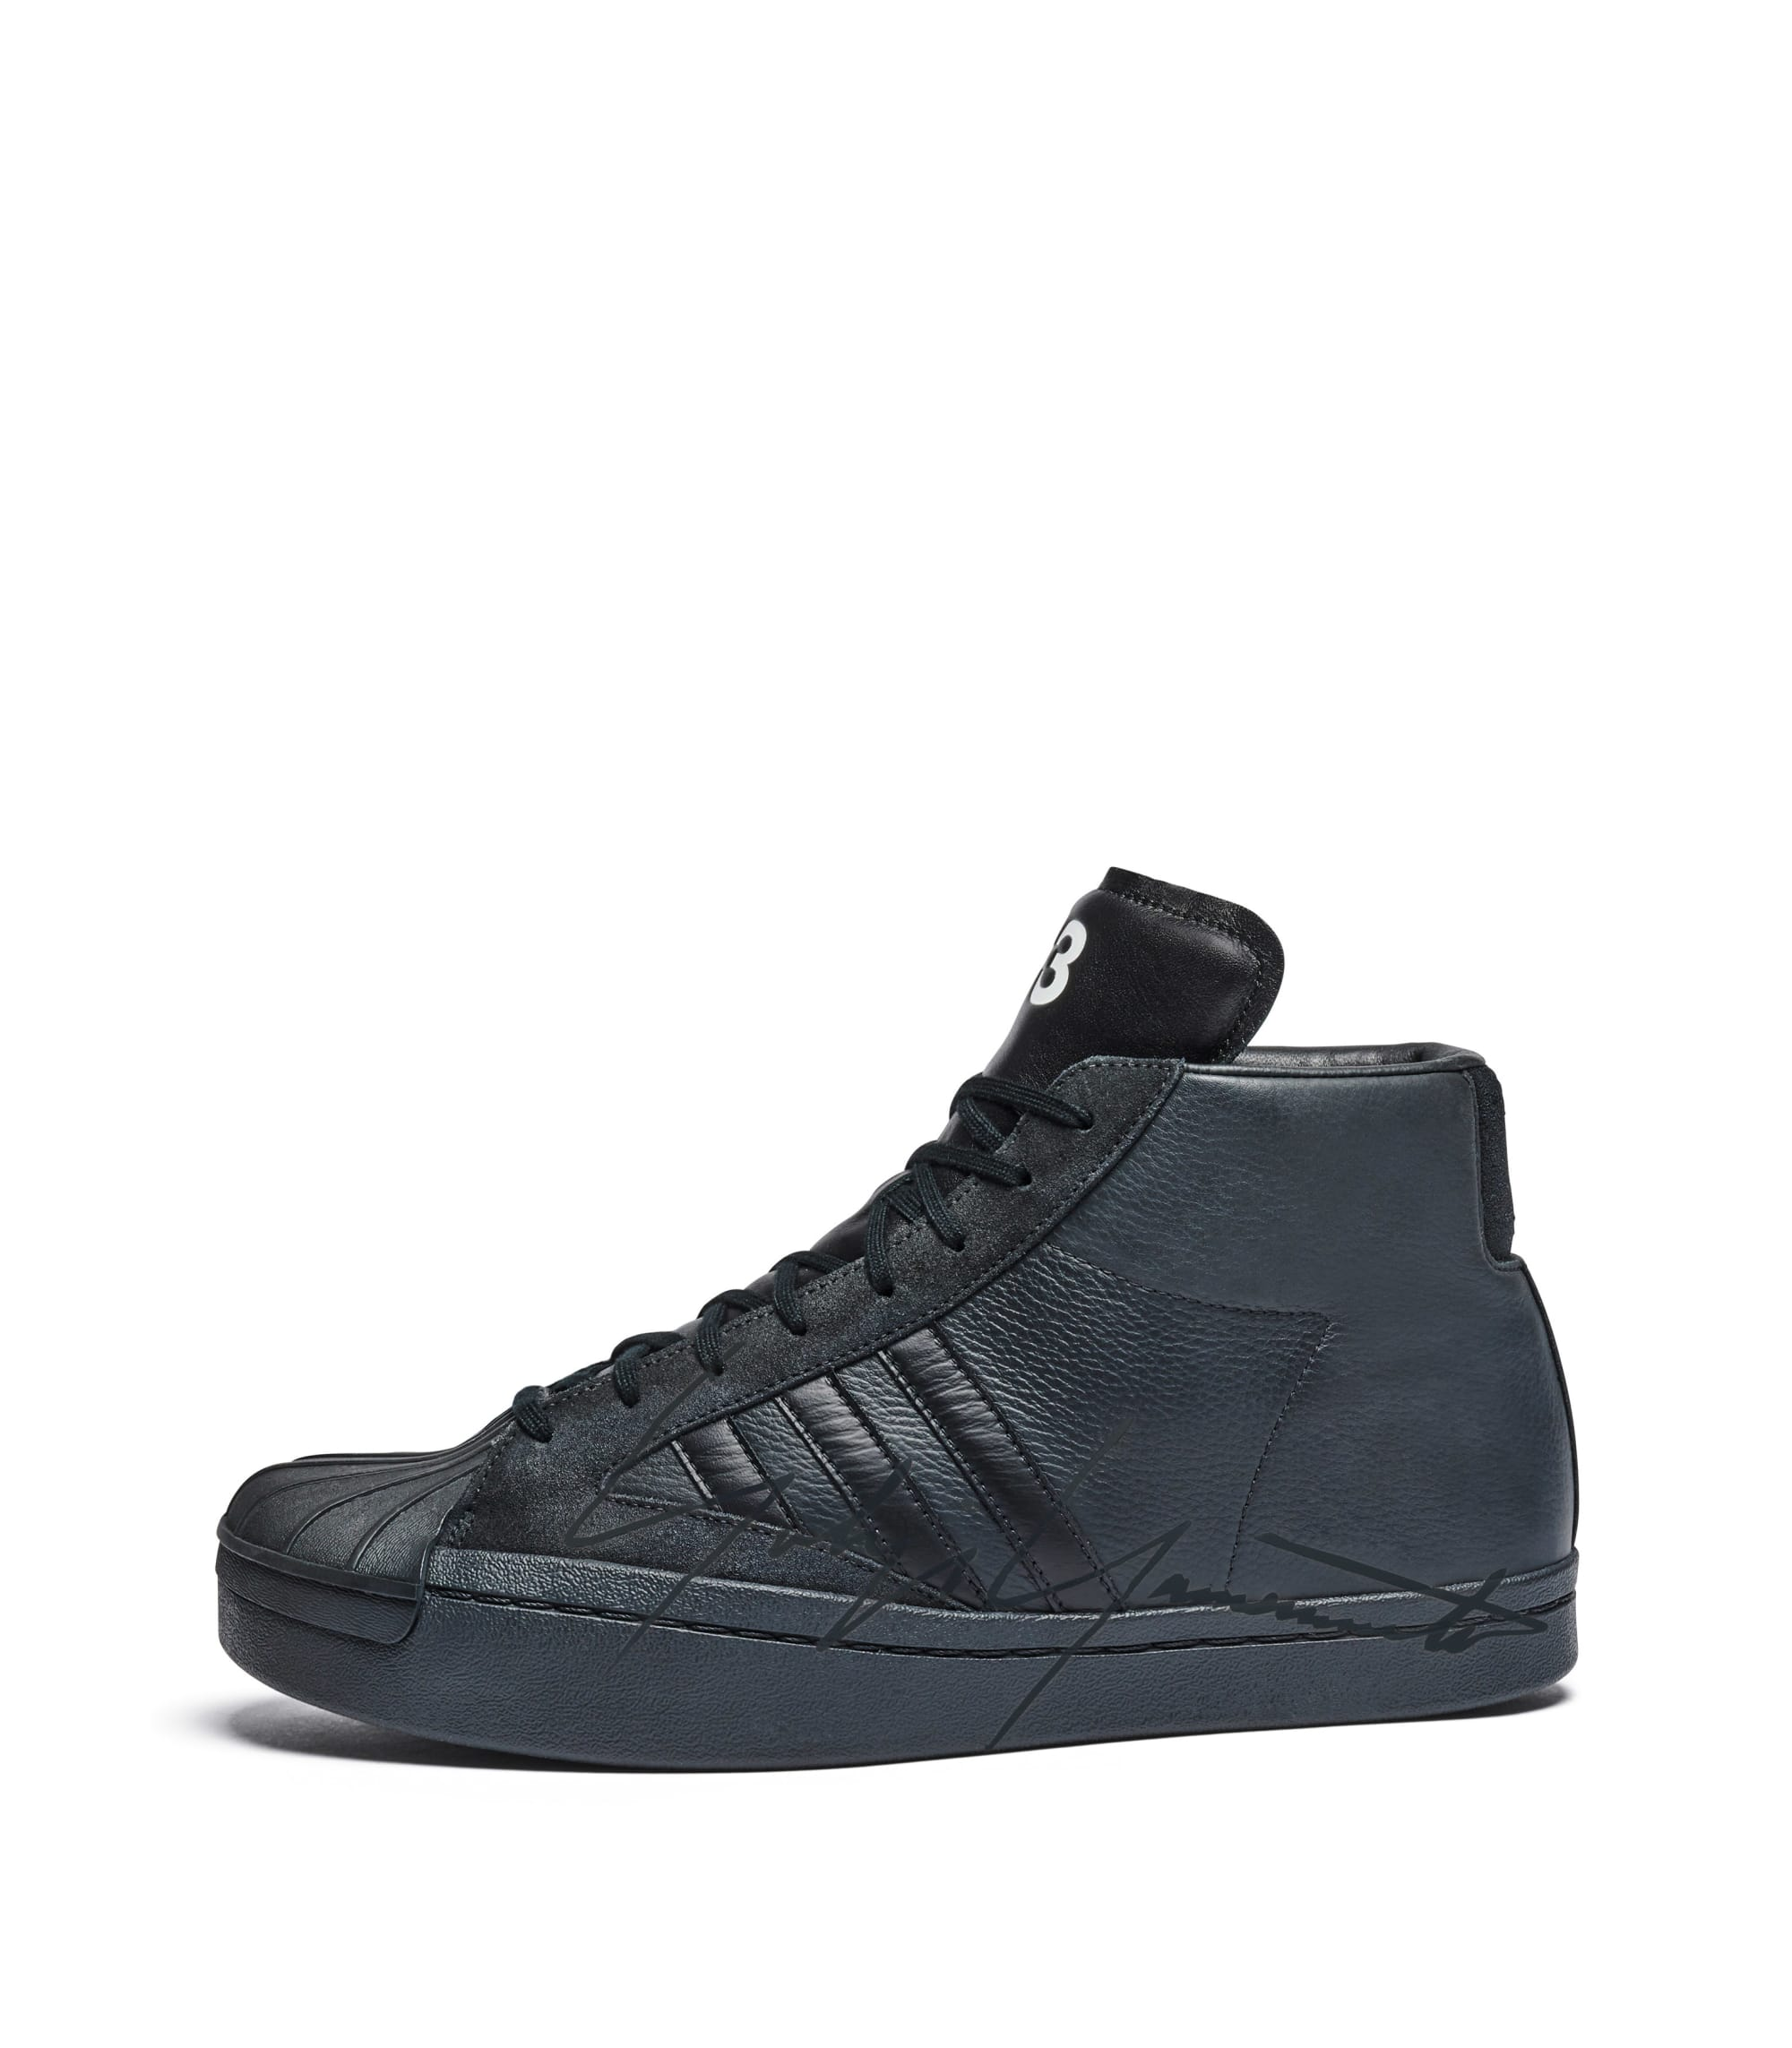 Y-3 superstar releasing on February 20th